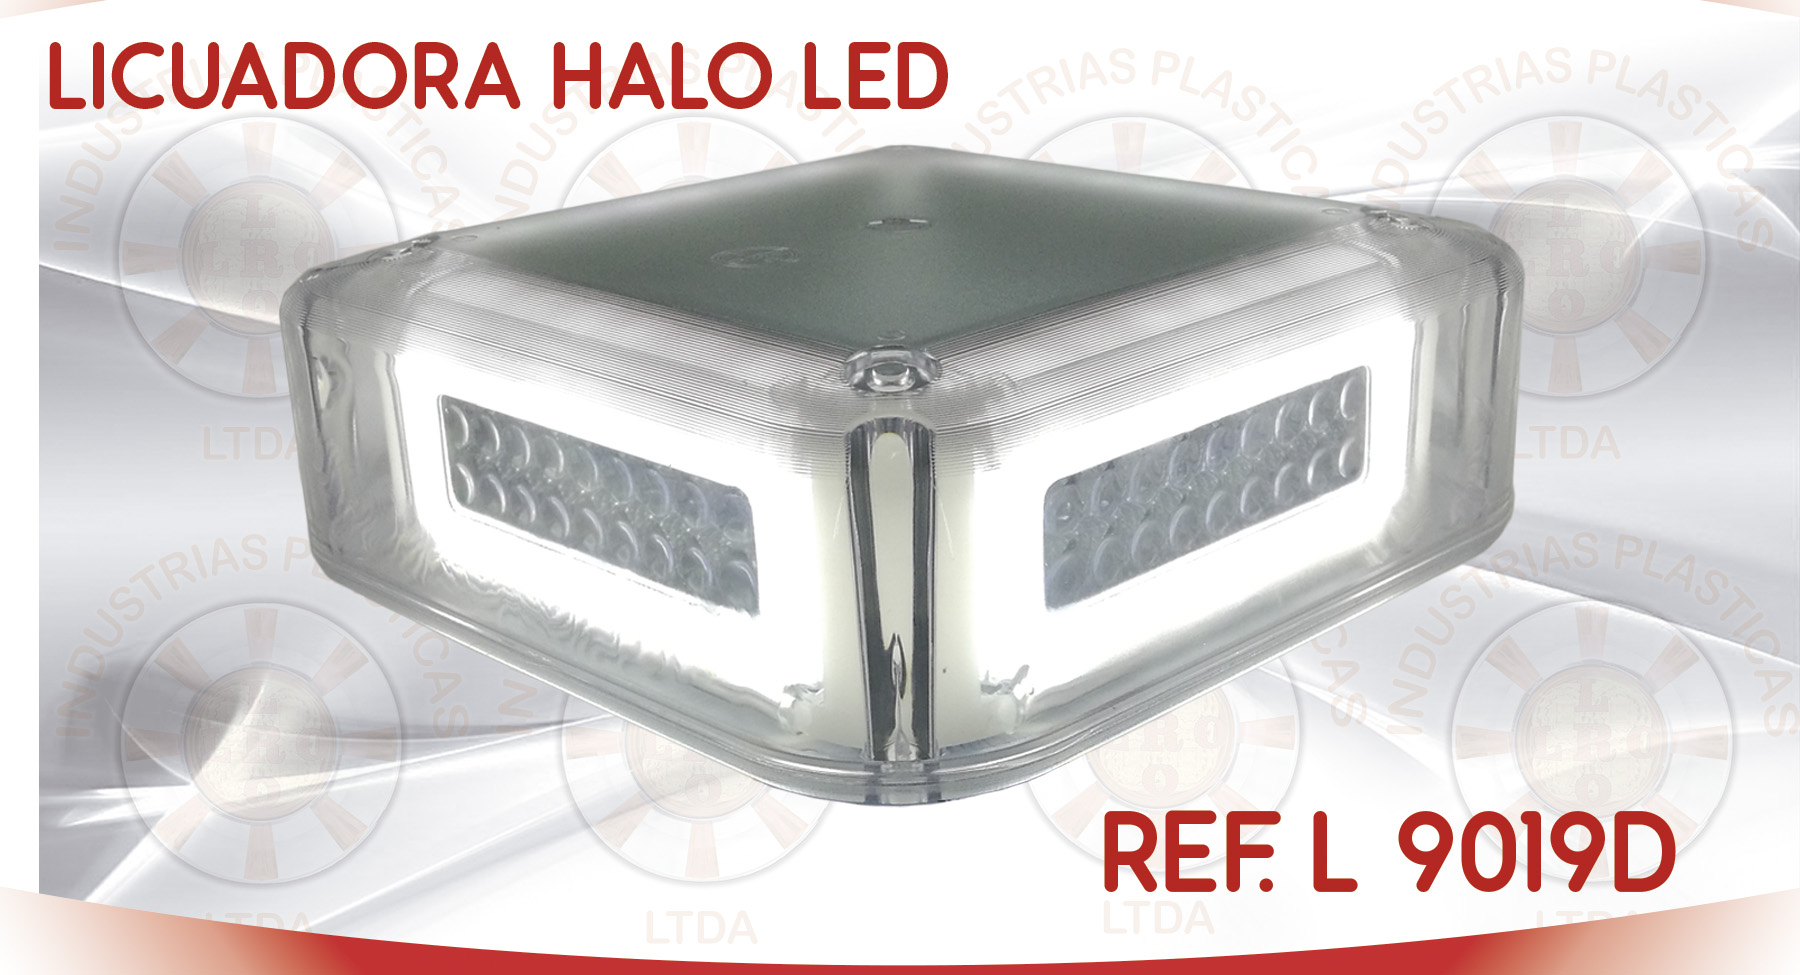 L 9019D LICUADORA HALO LED